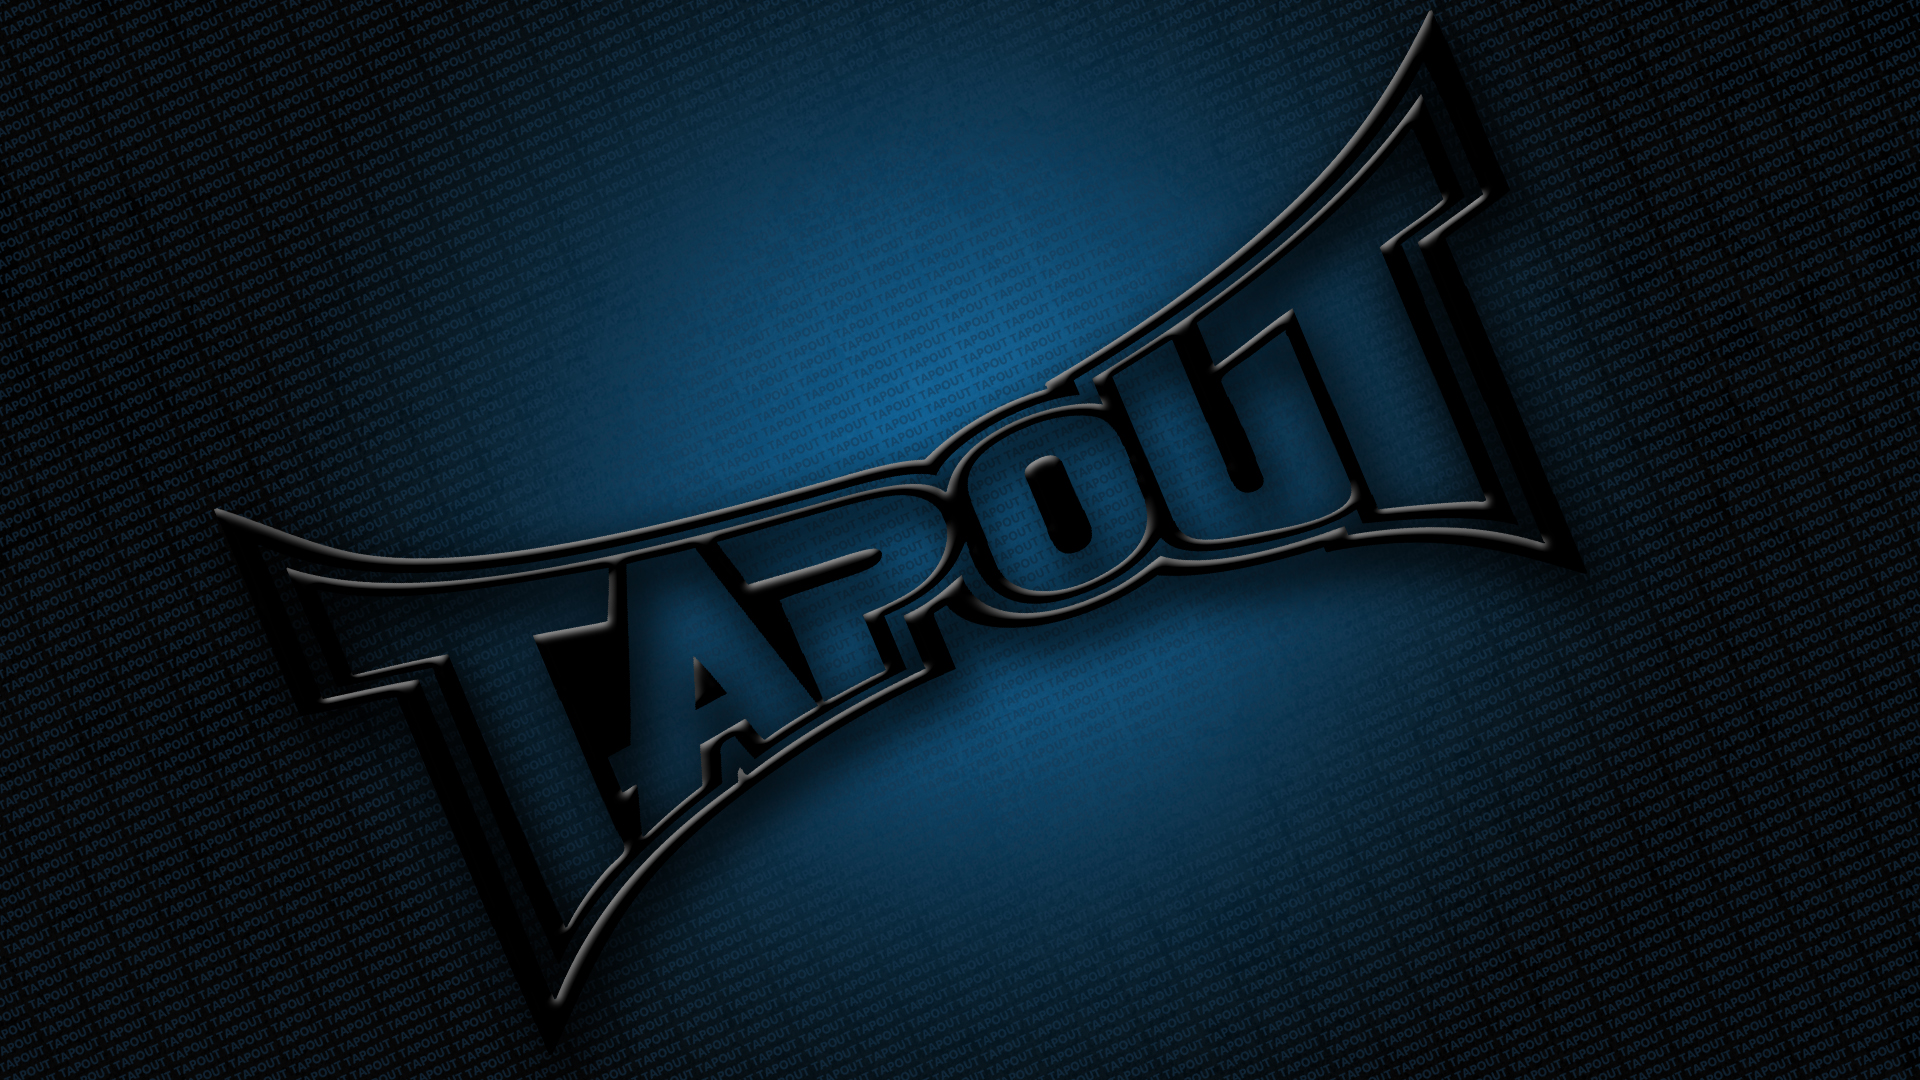 Black Tapout Logo Angled Tapout Small Print Grunge Background